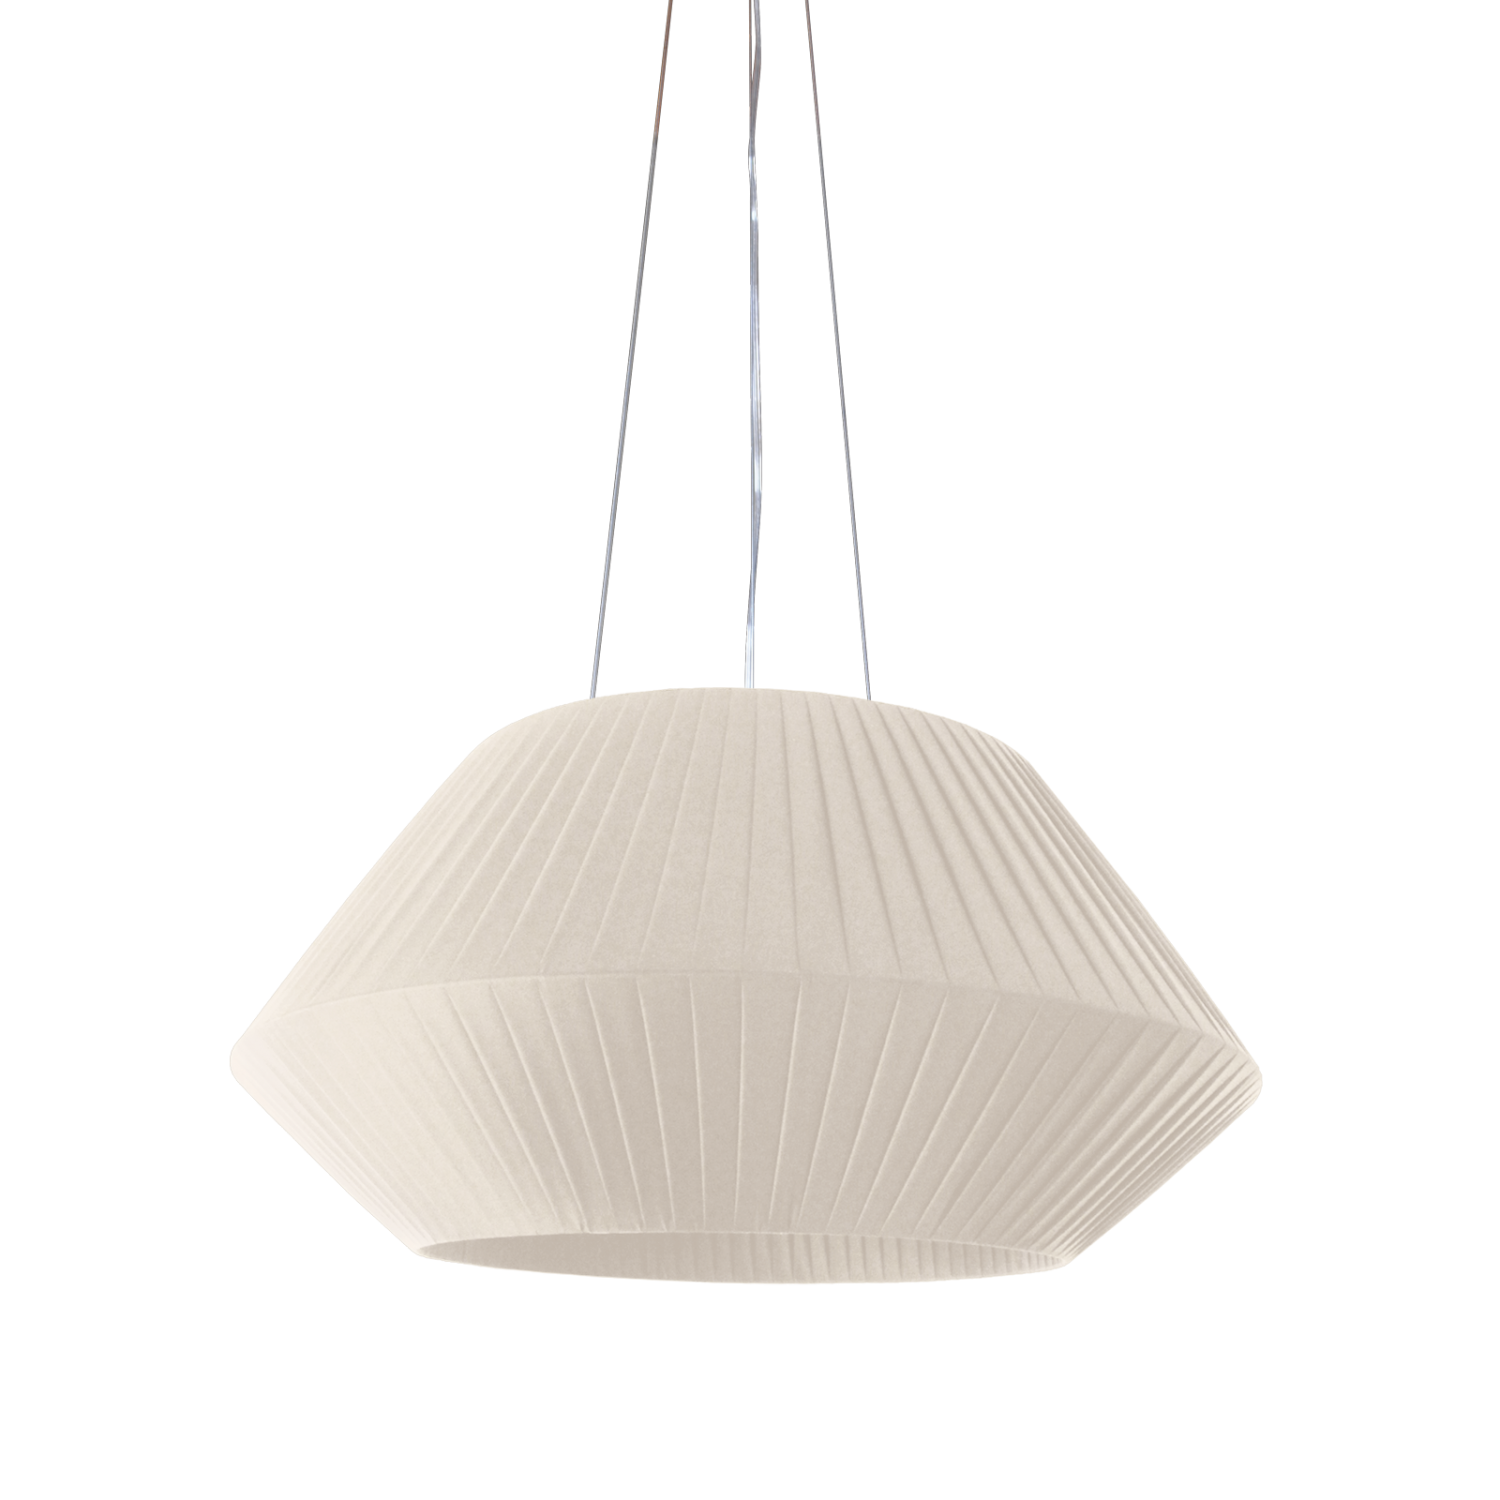 Suspension RUBAN H268 - Design Fabrice BERRUX